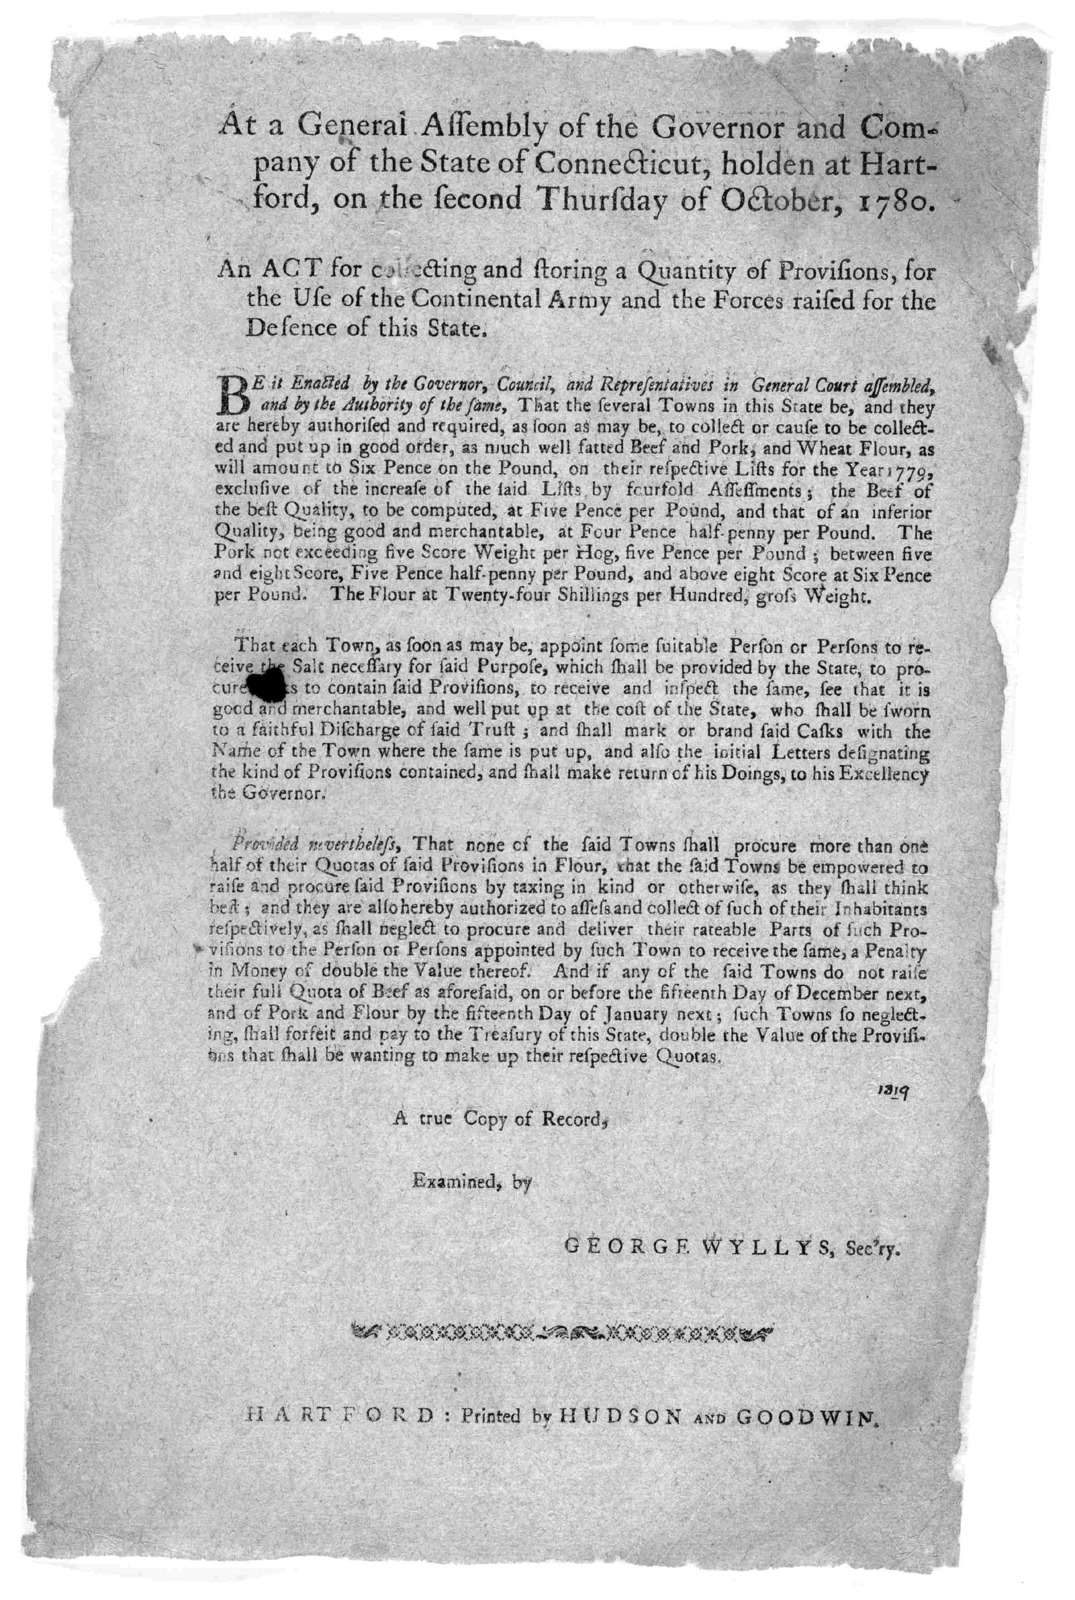 At a General Assembly of the Governor and company of the State of Connecticut, holden at Hartford, on the second Thursday of October, 1780. An act for collecting and storing a quantity of provisions, for the use of the Continental army and the f